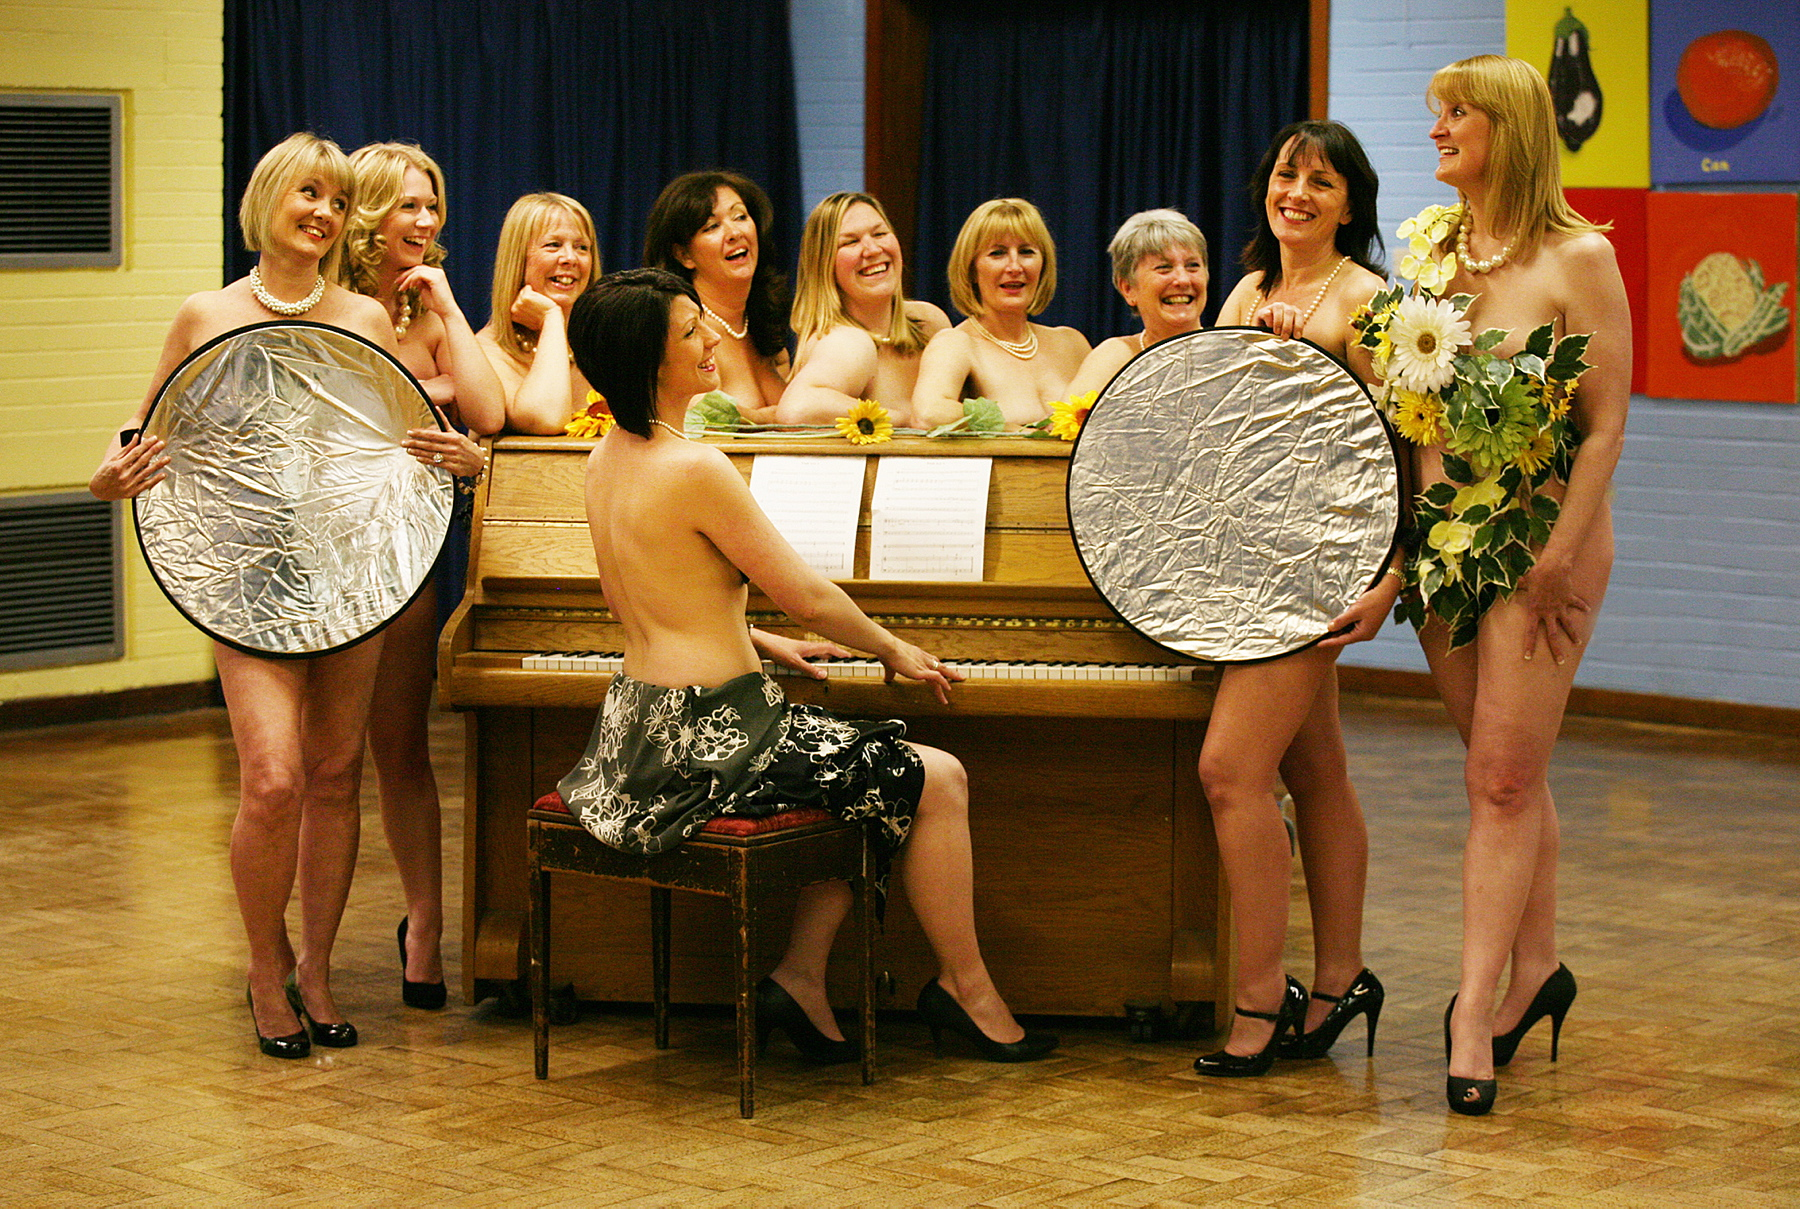 Calendar Girls – Prince of Wales Centre in Cannock